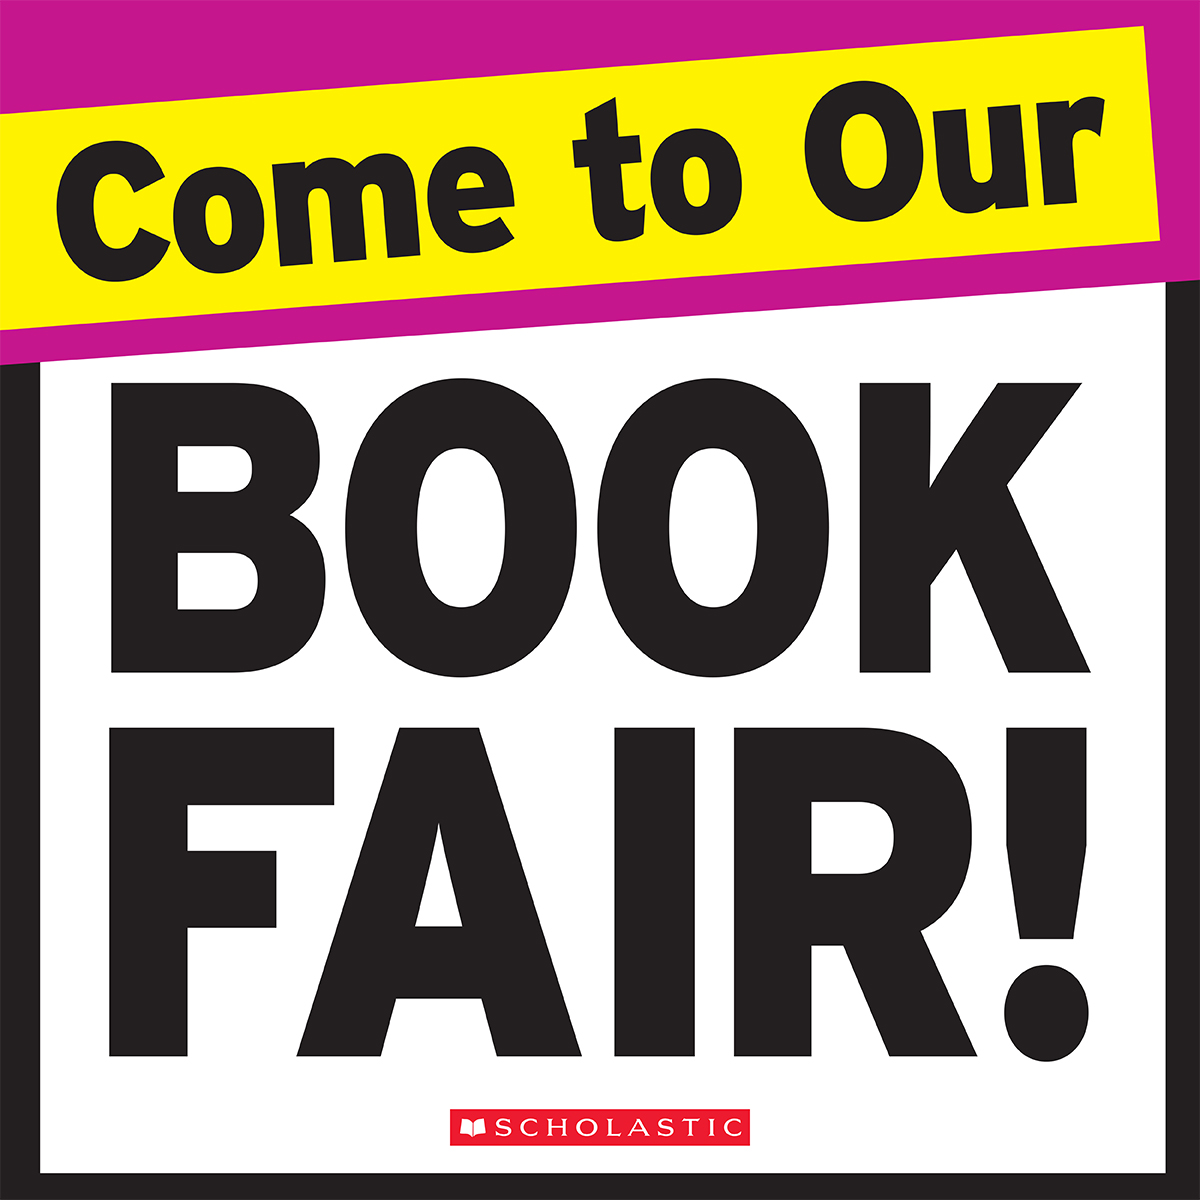 Sage Park Library Book Fair: Nov. 28 - Dec. 6